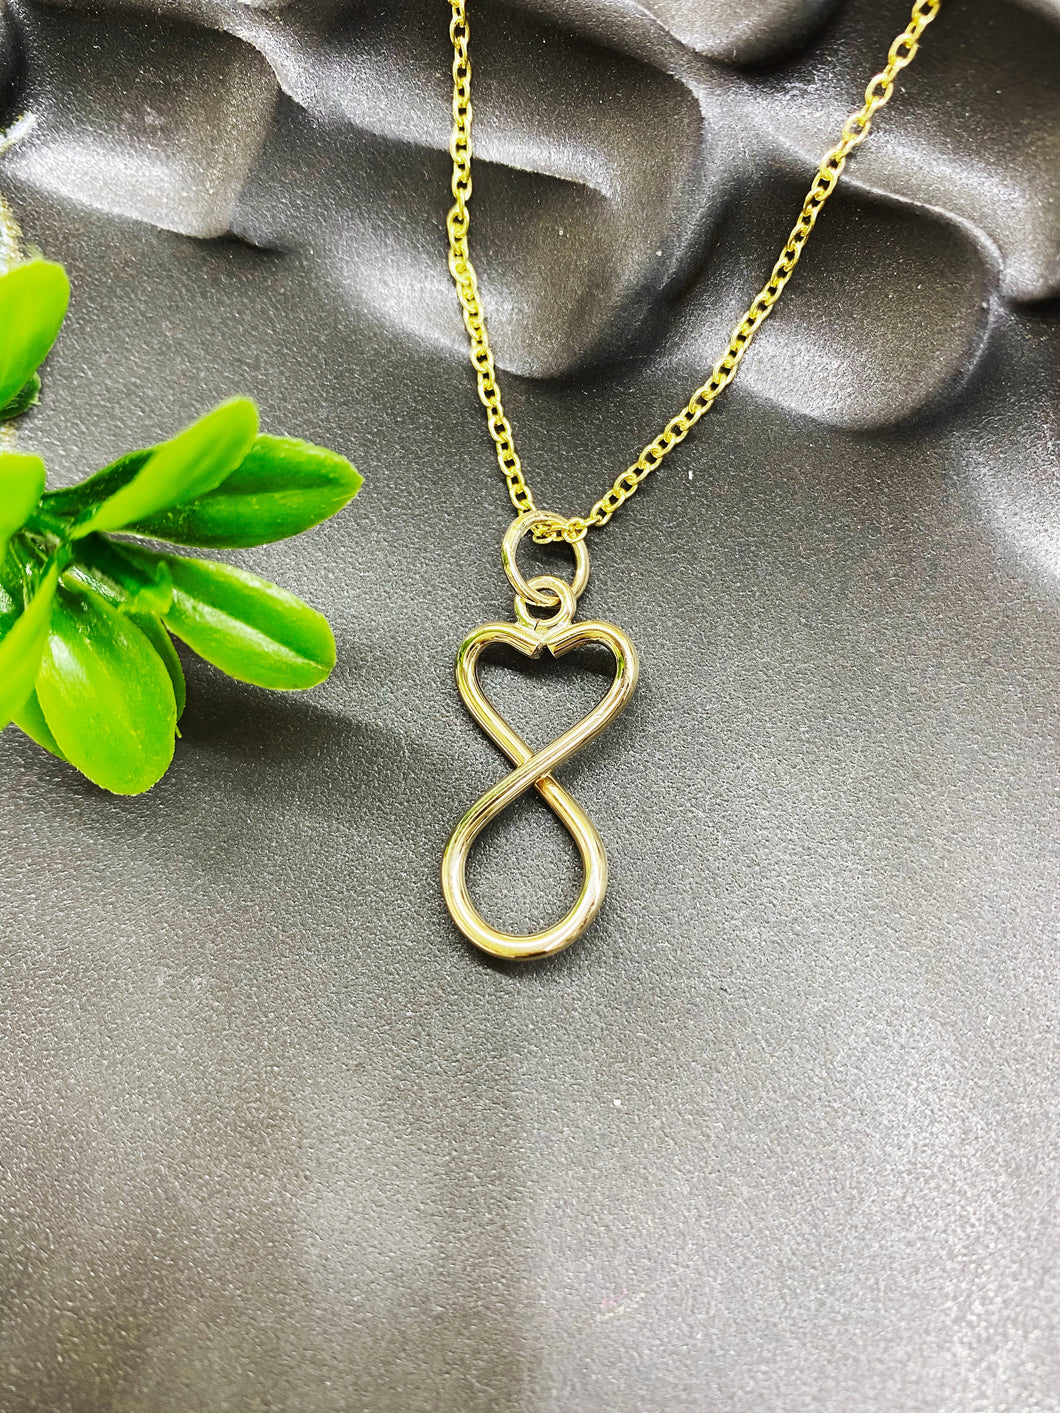 Chad Miller Metalsmith: Heart Swirl Necklace Gold Filled